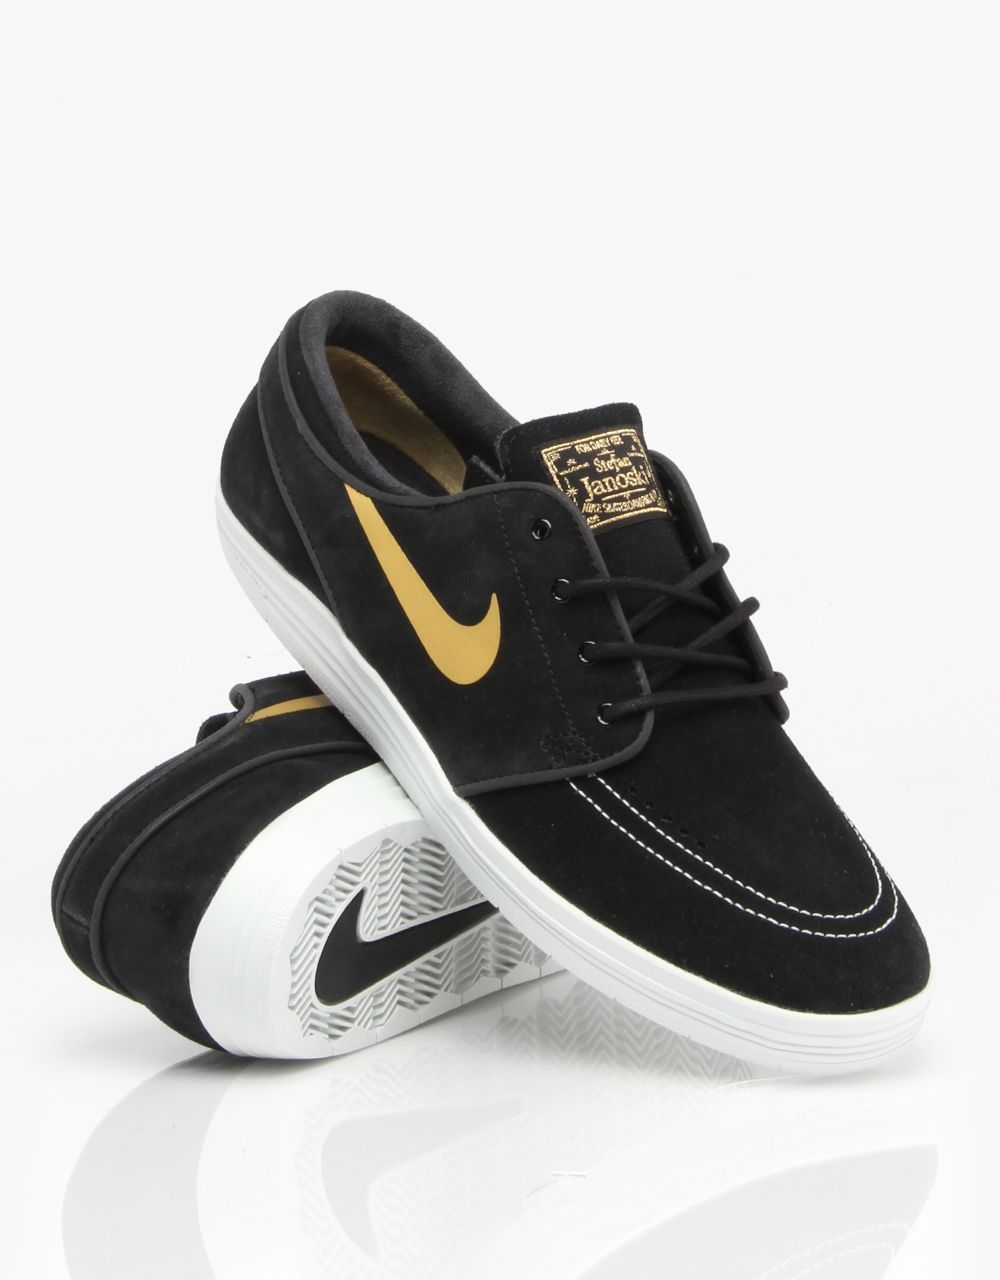 Nike SB Lunar Stefan Janoski Skate Shoes - Black Metallic Gold- White -  RouteOne.co.uk 5b832986fada